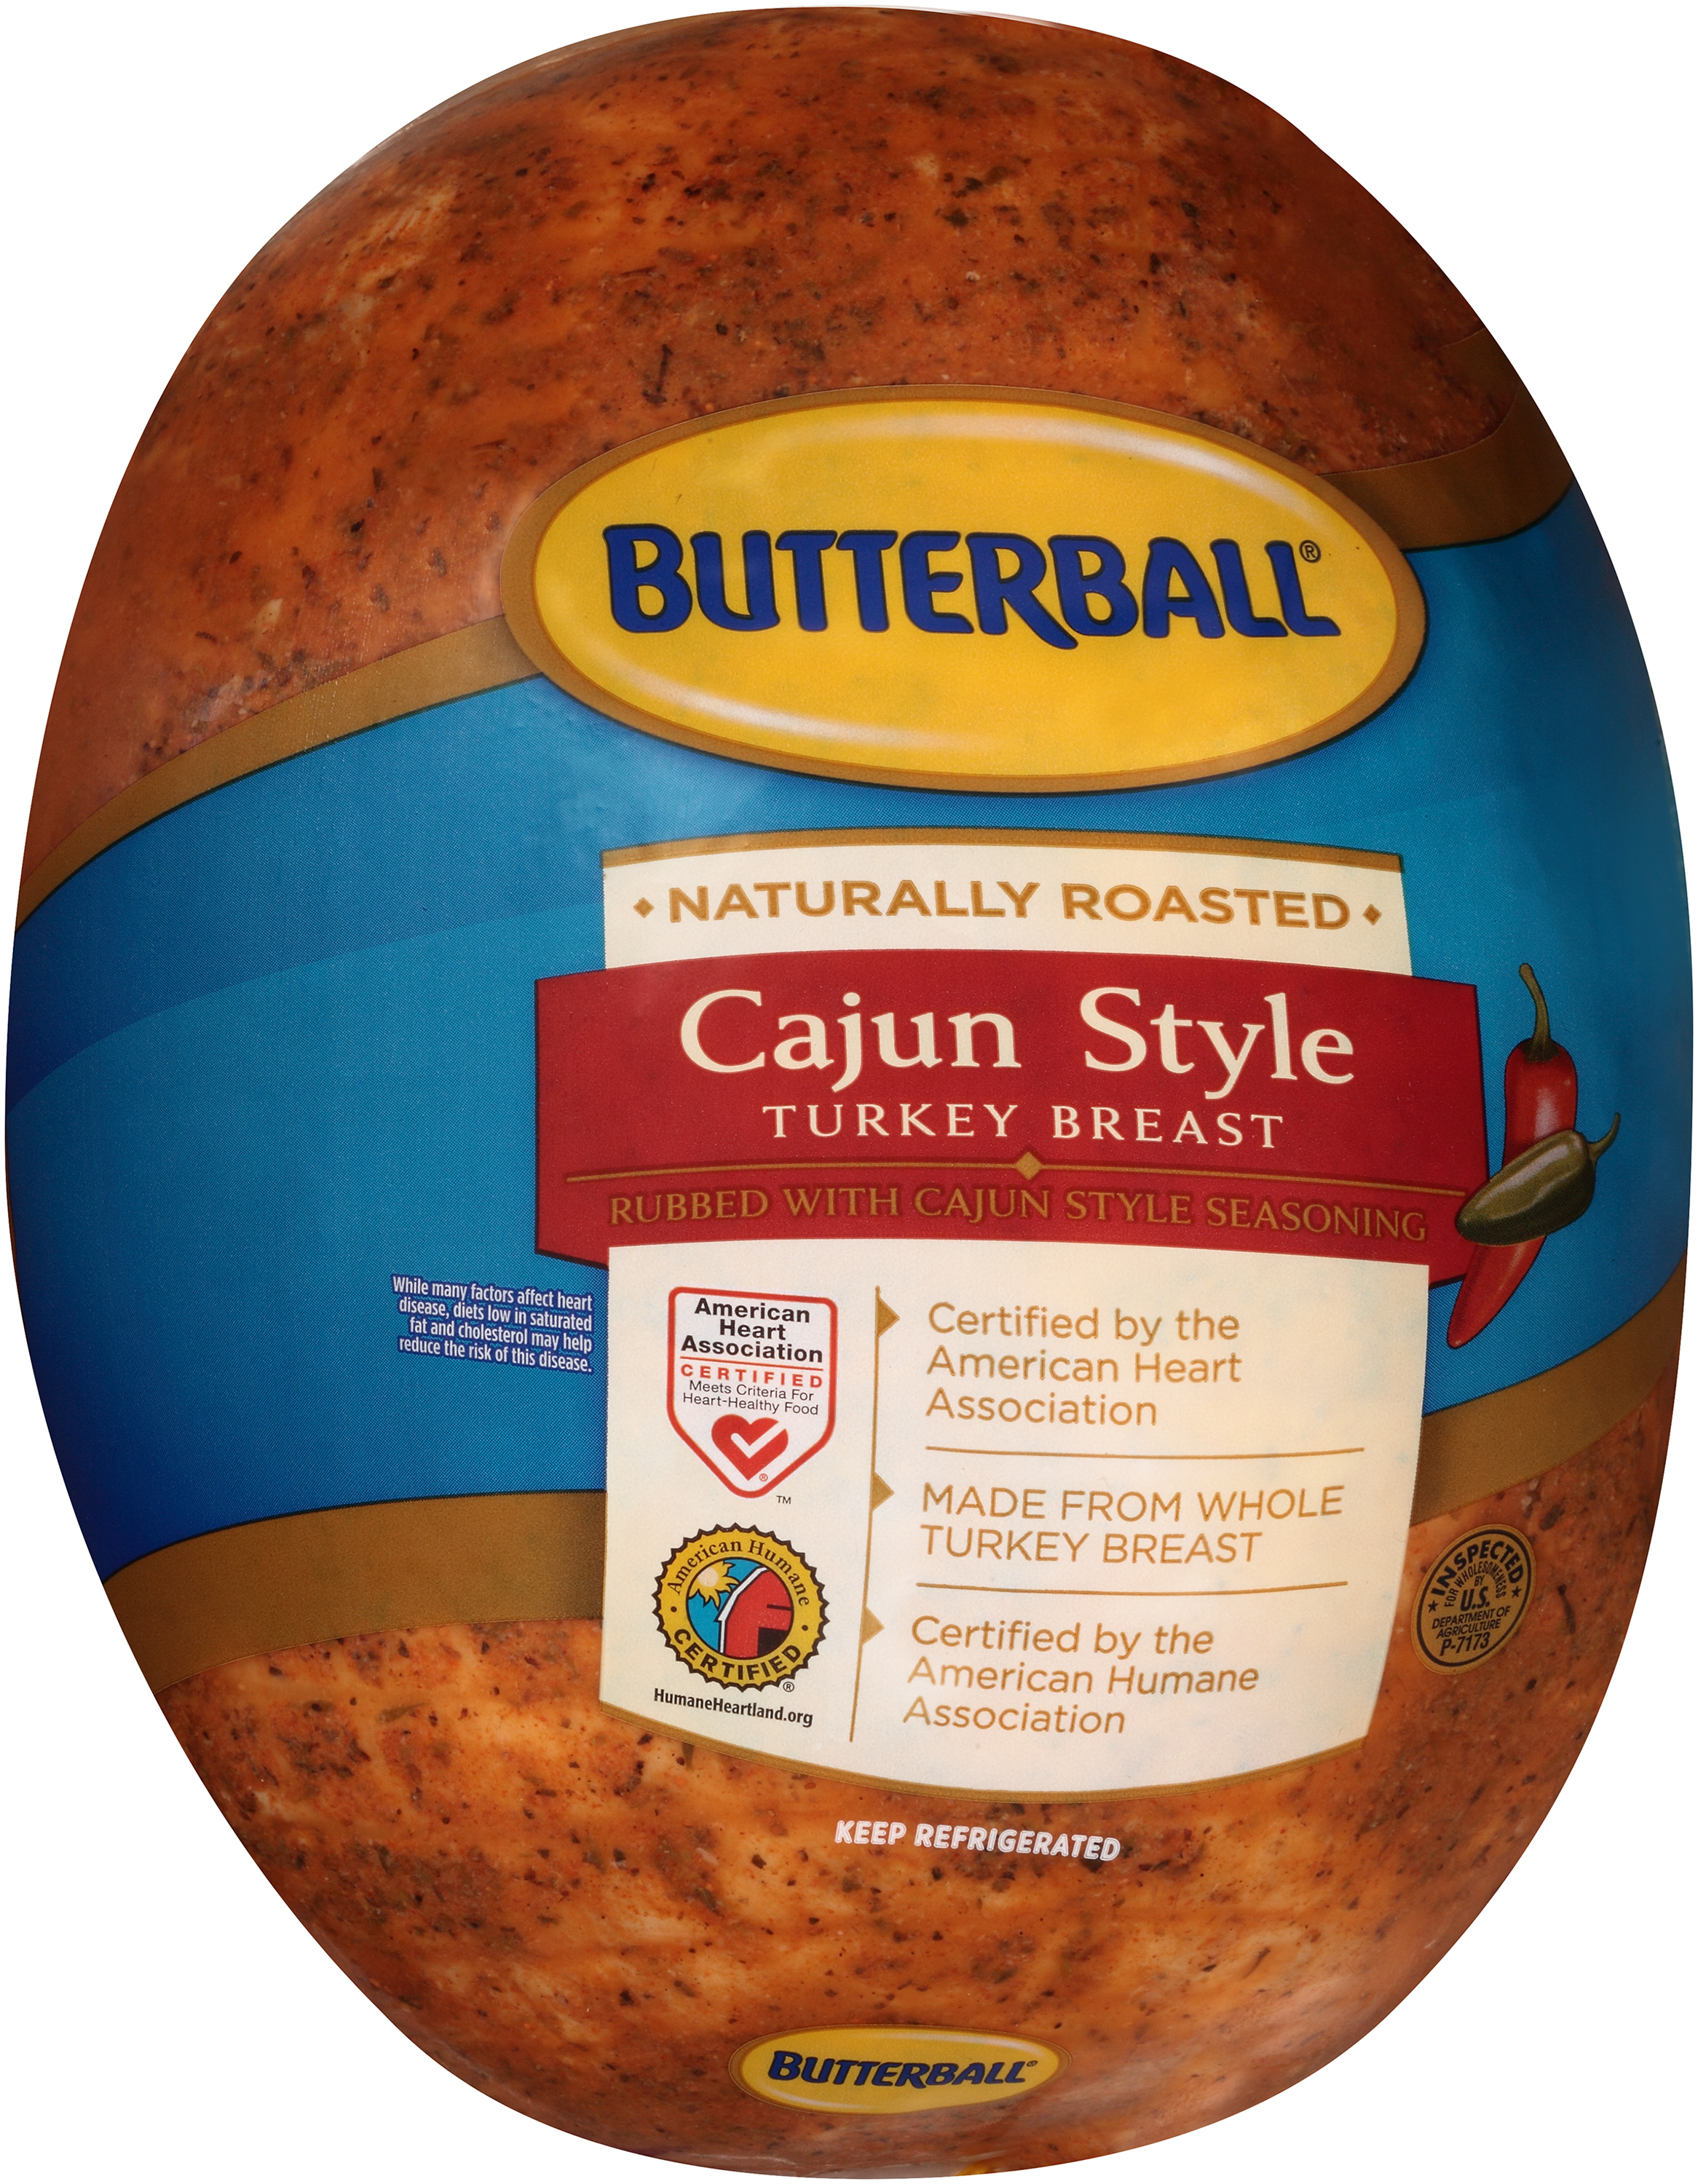 Butterball Cajun Turkey Breast Deli Sliced 1 lb